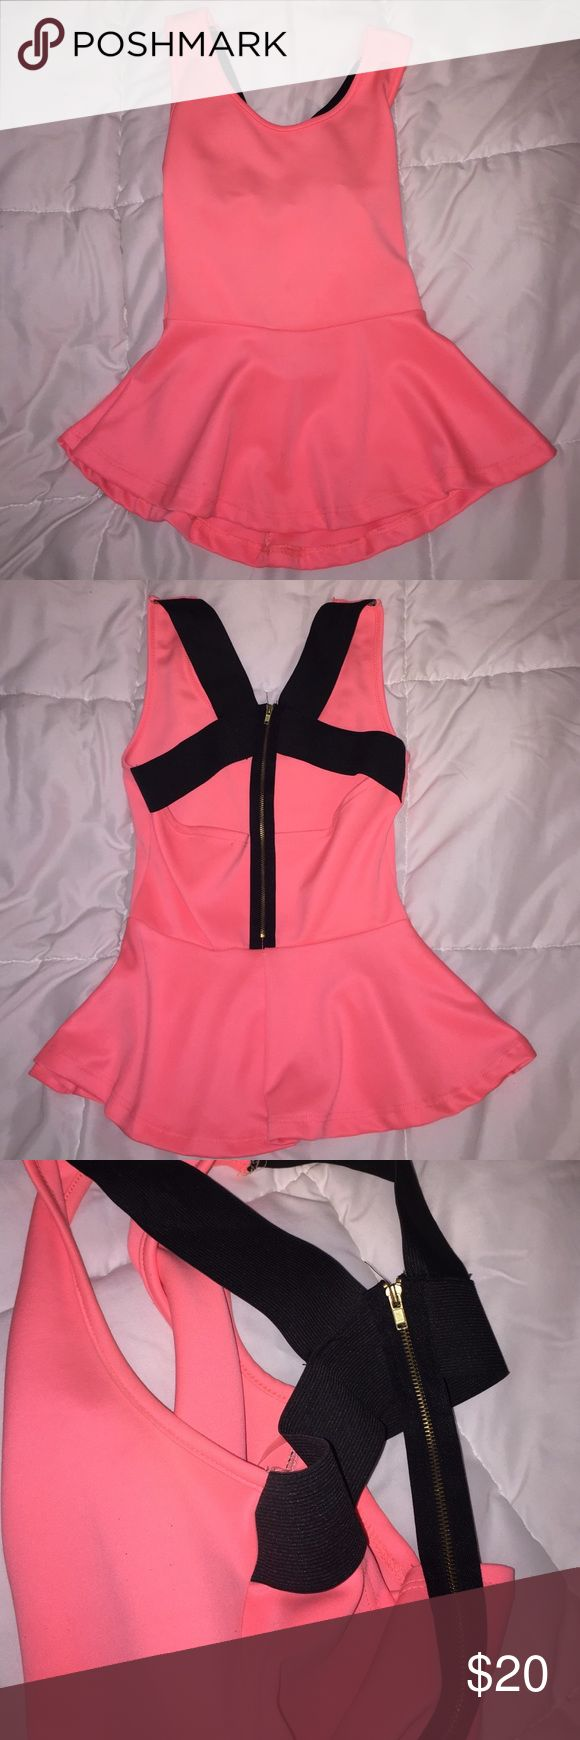 Open back peplum blouse This hot pink peplum top has a strappy open back. It fits wonderfully as it hugs and is loose in just the right places. Tops Blouses